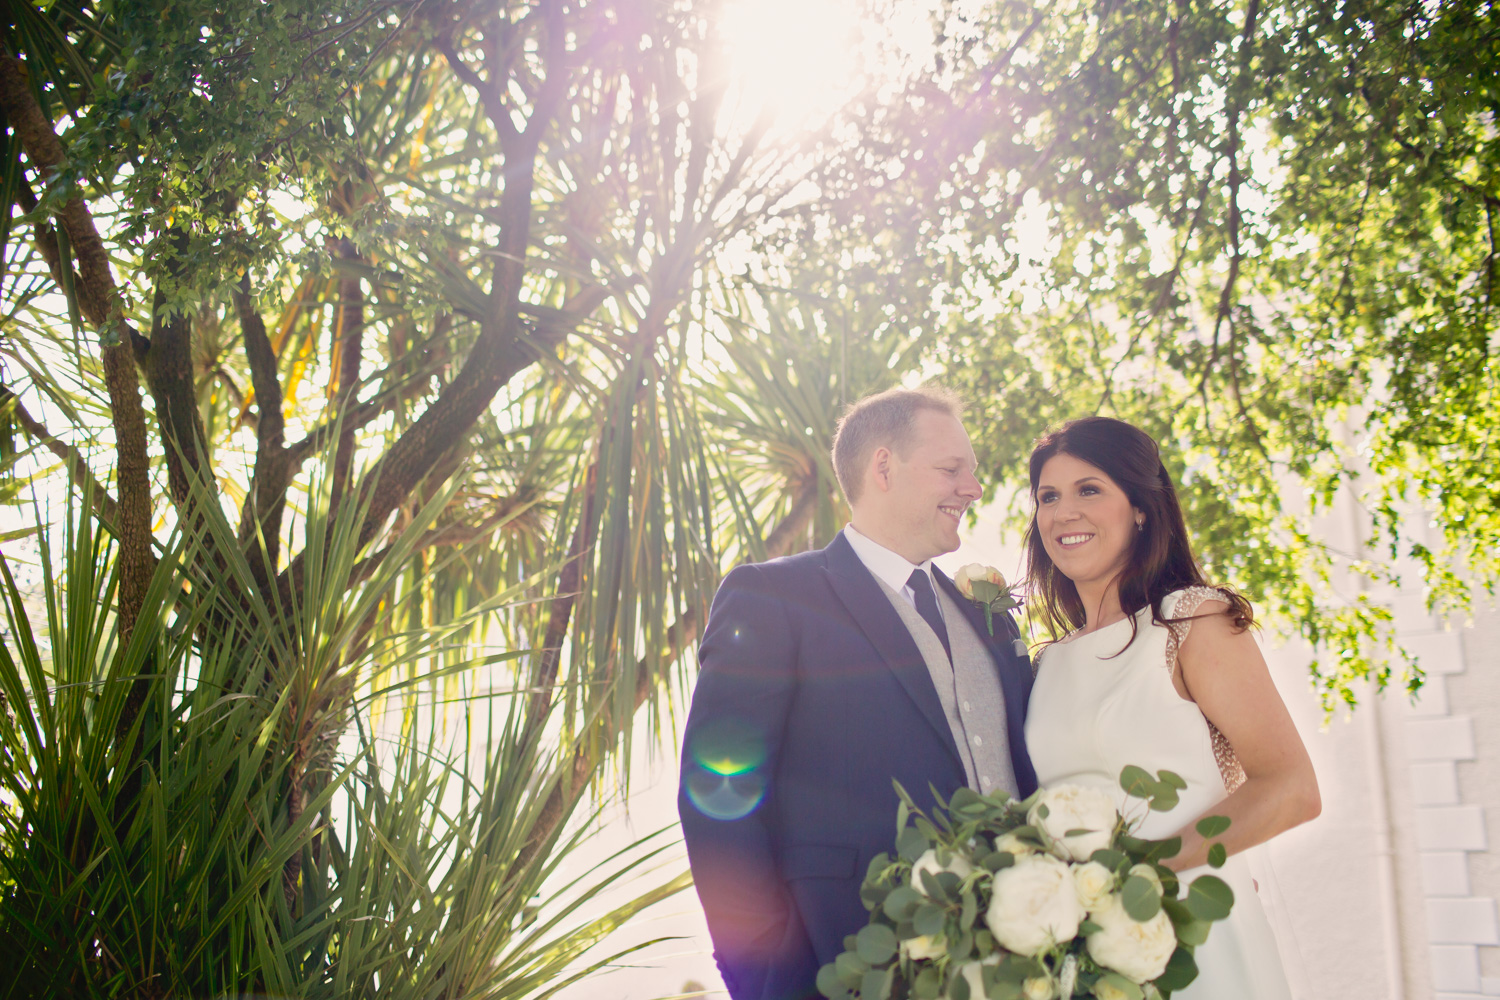 Mark_Barnes_Northern_Ireland_wedding_photographer_Kilmore_House_Wedding_photography_Kilmore_House_wedding_photographer-50.jpg